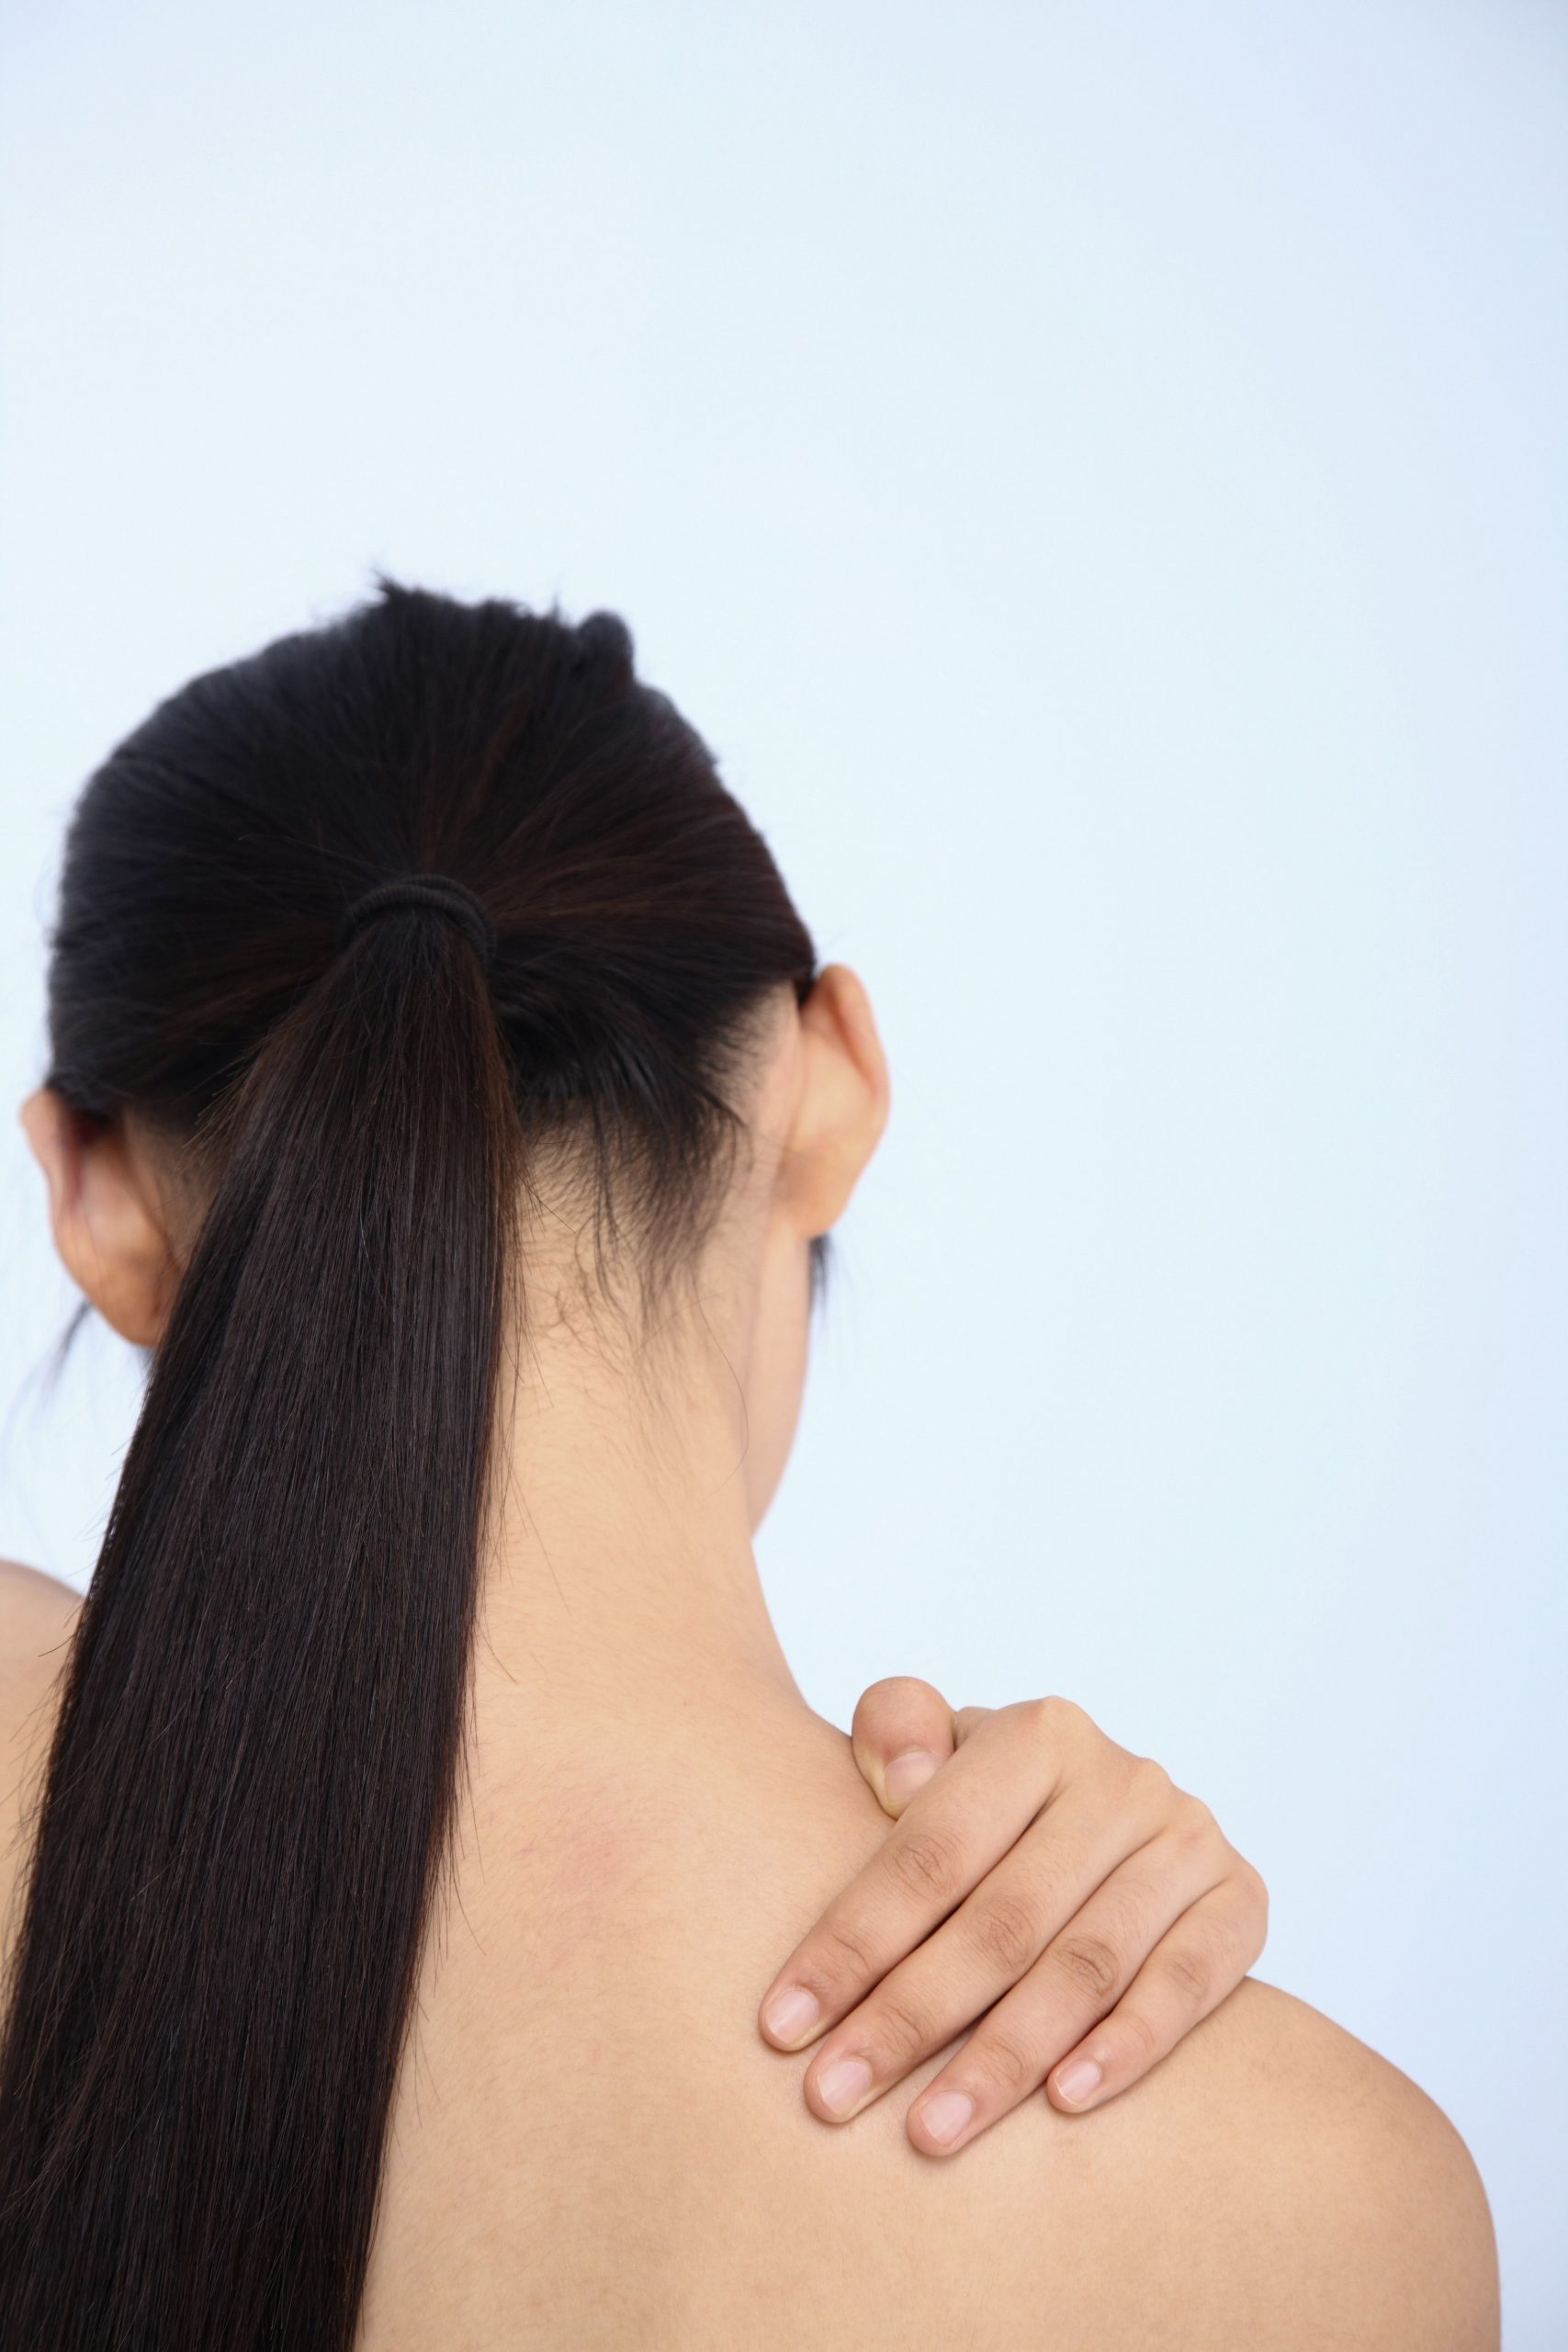 Exercises for osteoarthritis of the shoulder